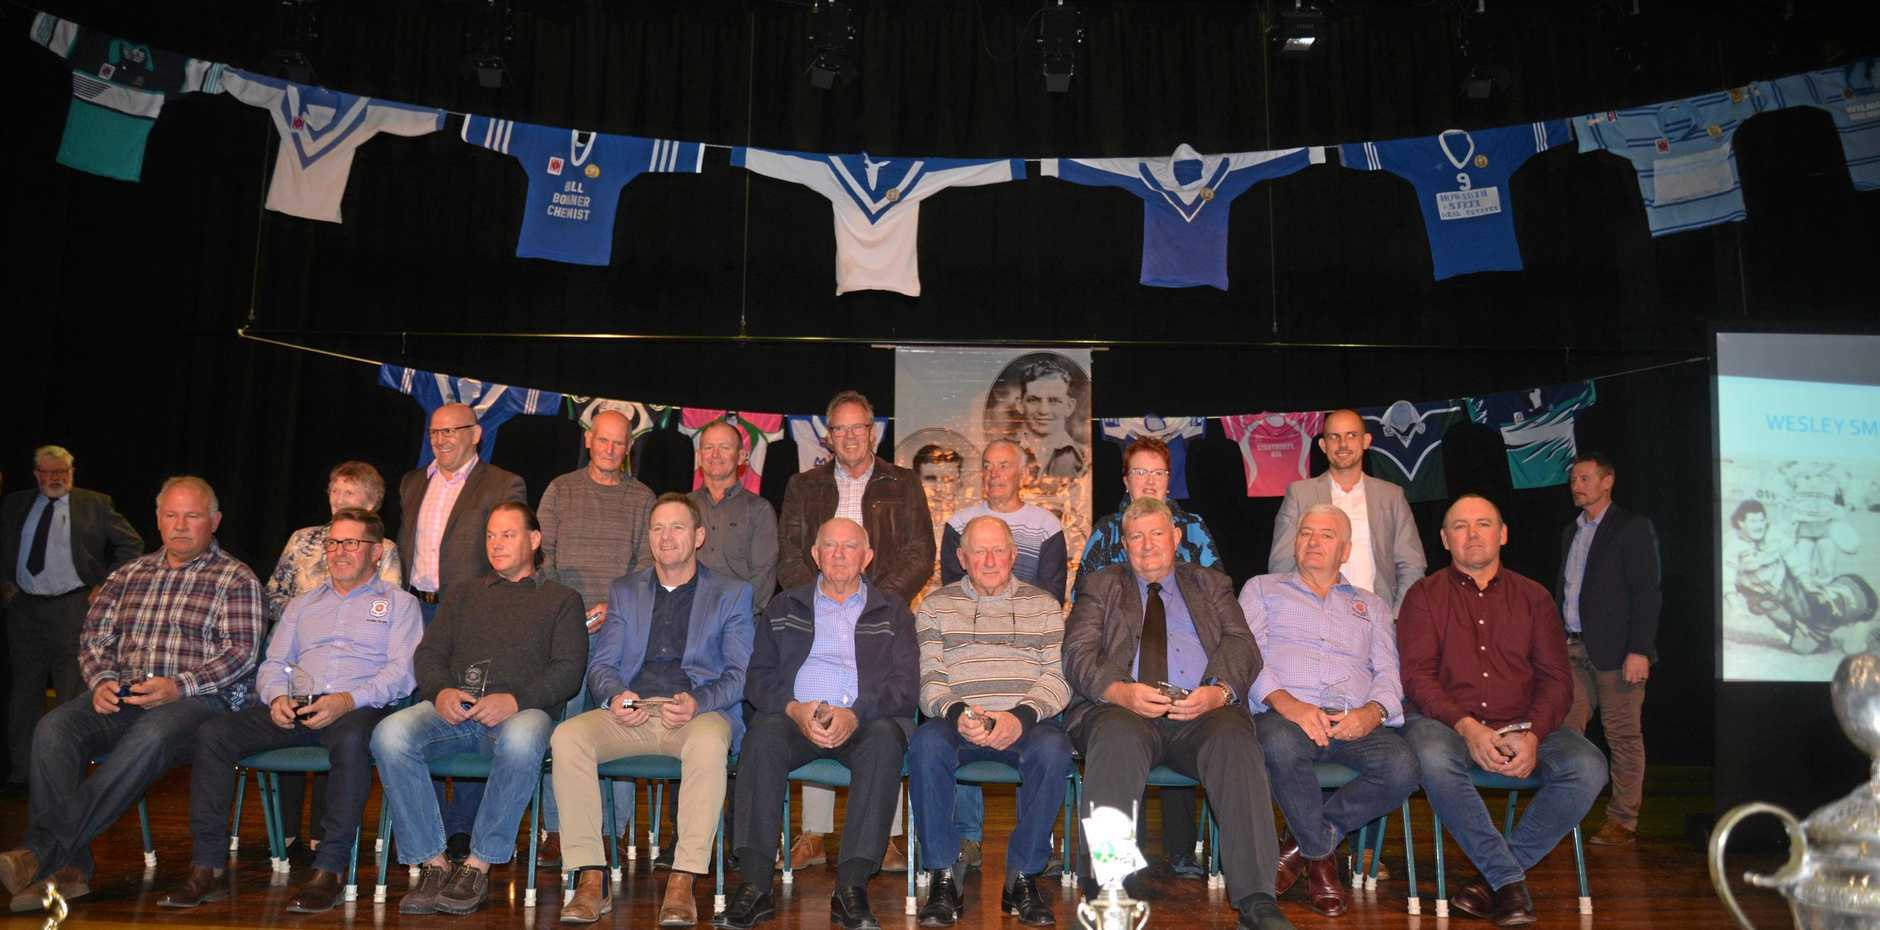 The Stanthorpe Rugby League Team of the Century (front, from left) Wesley Smith, Les Sellars (deceased, represented by past club president and 100-year committee member David Ball), John Scott (deceased, represented by son Grant Scott), Rob Reeves, Bob Newlands (represented by friend and 100-year committee member Ray Reeves), Peter Mavin, Peter